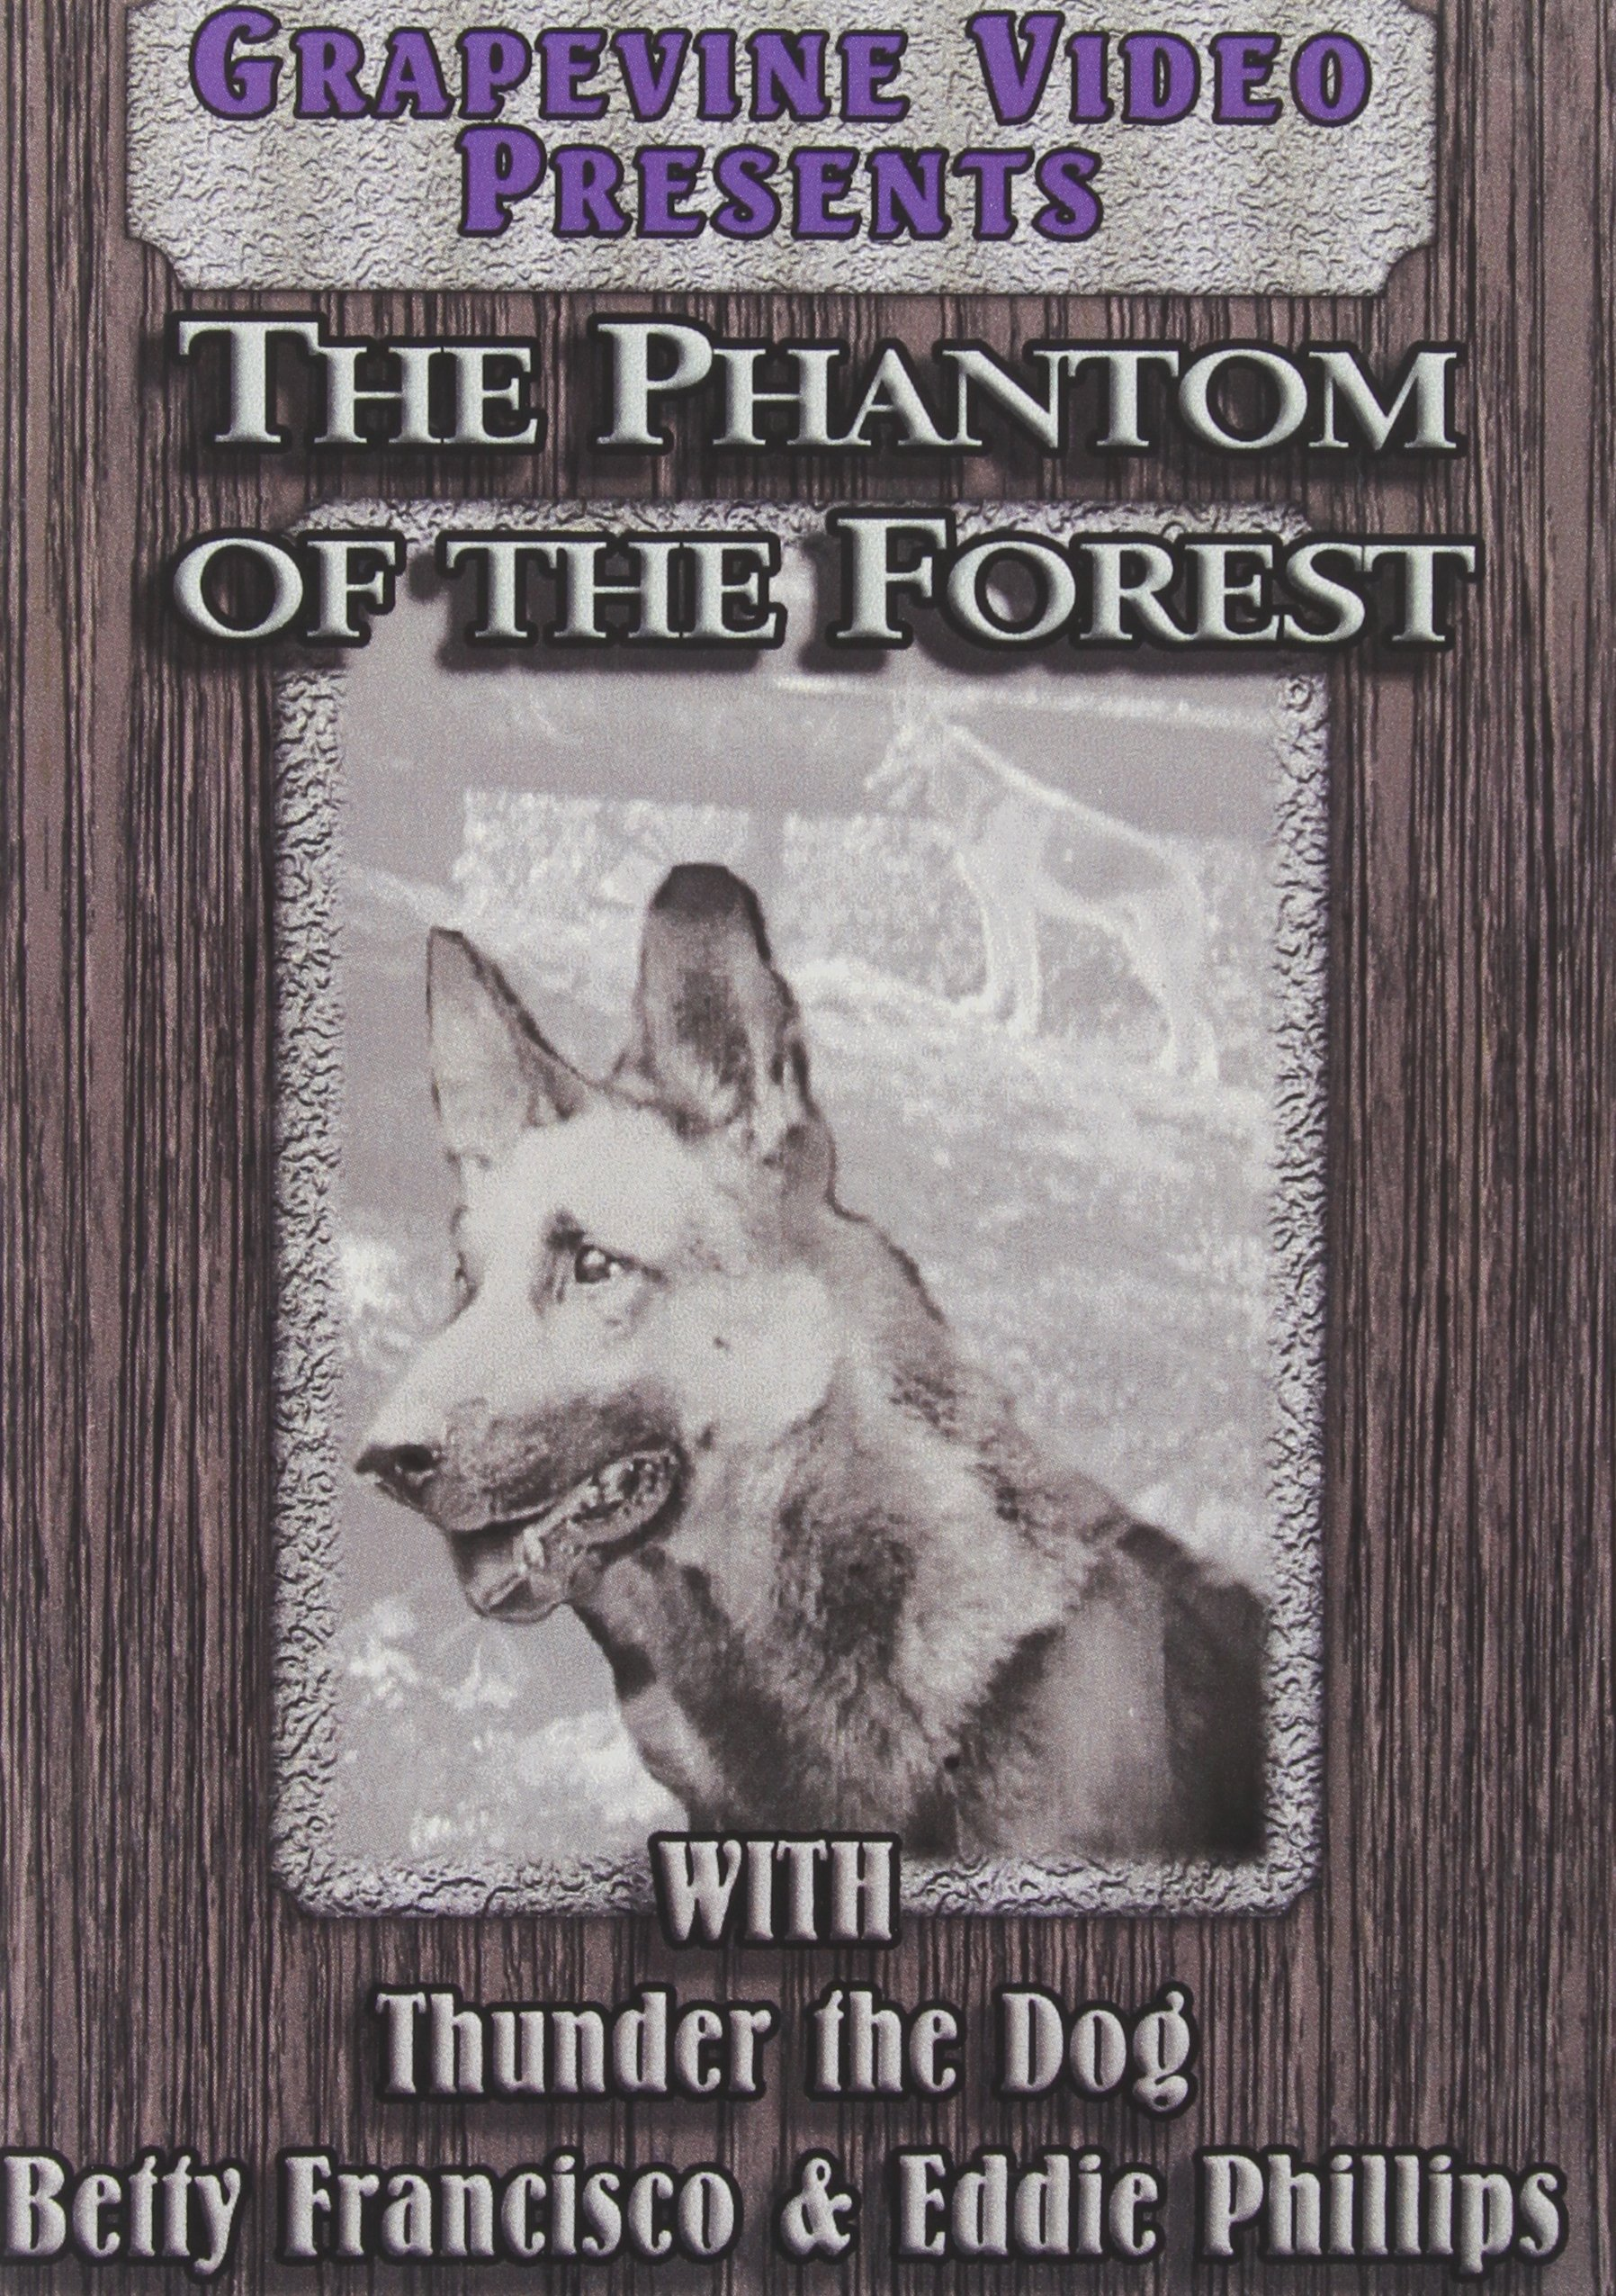 DVD : The Phantom Of The Forest (Black & White, Silent Movie)